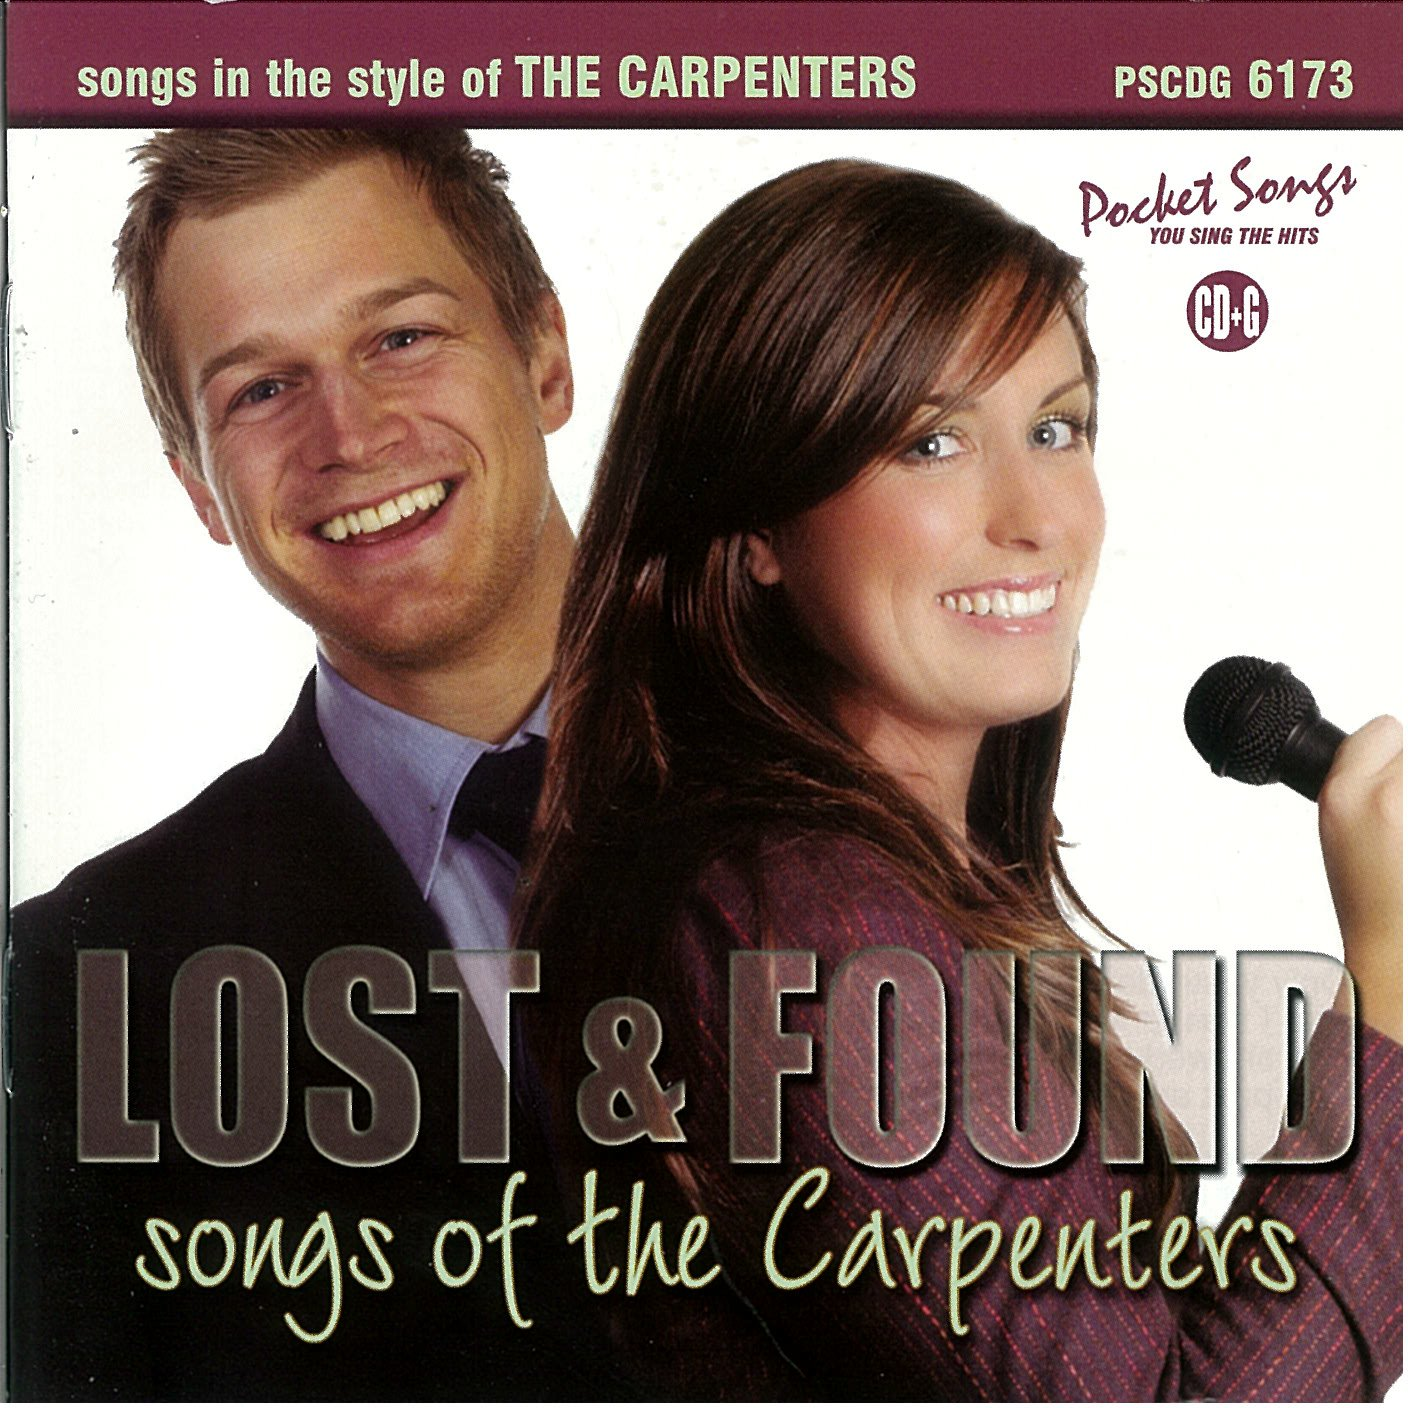 Lost & Found: Songs in the Style of the Carpenters